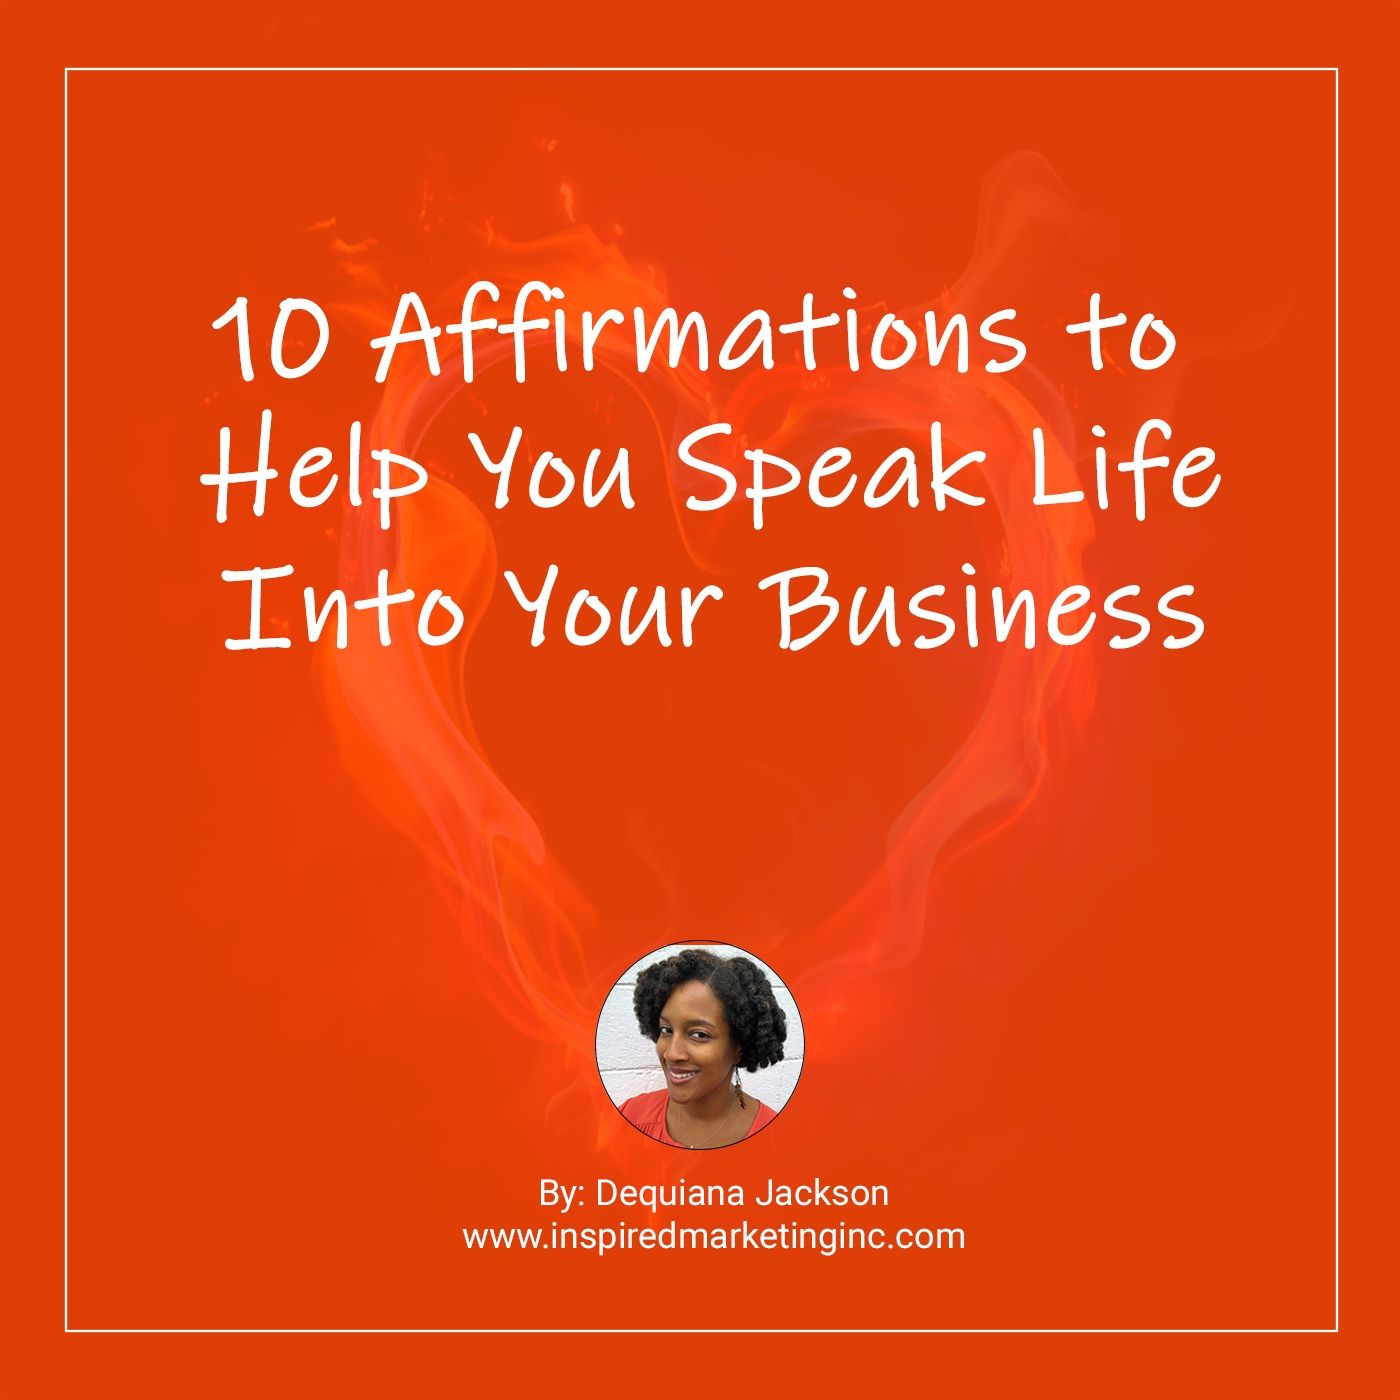 10 Affirmations to Help You Speak Life Into Your Business